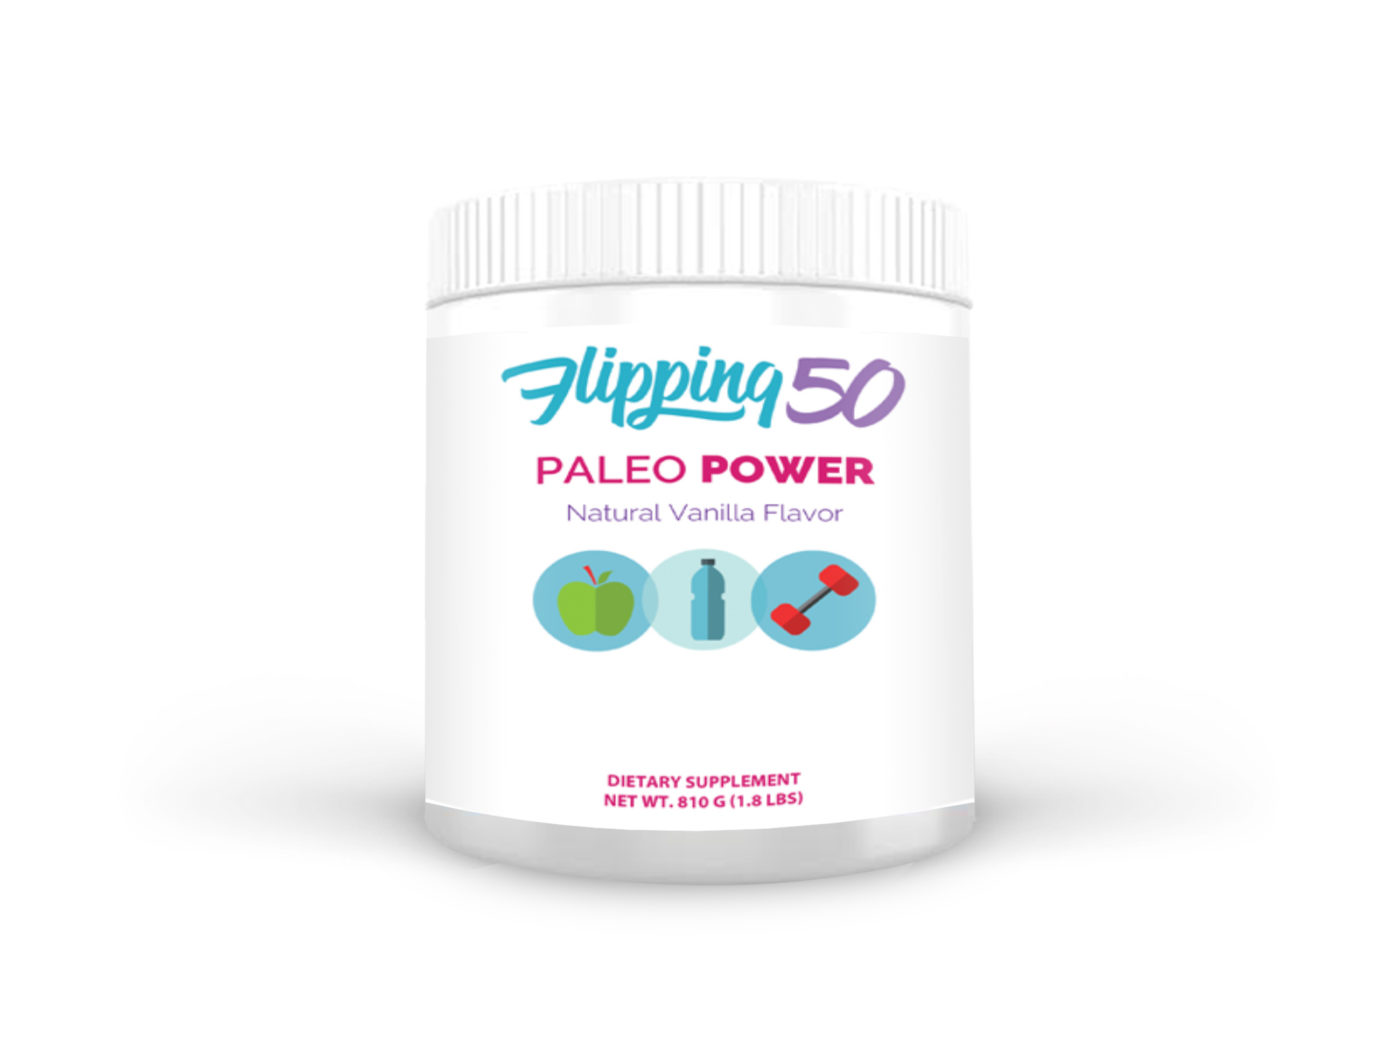 paleo-power-natural-vanilla-protein-powder